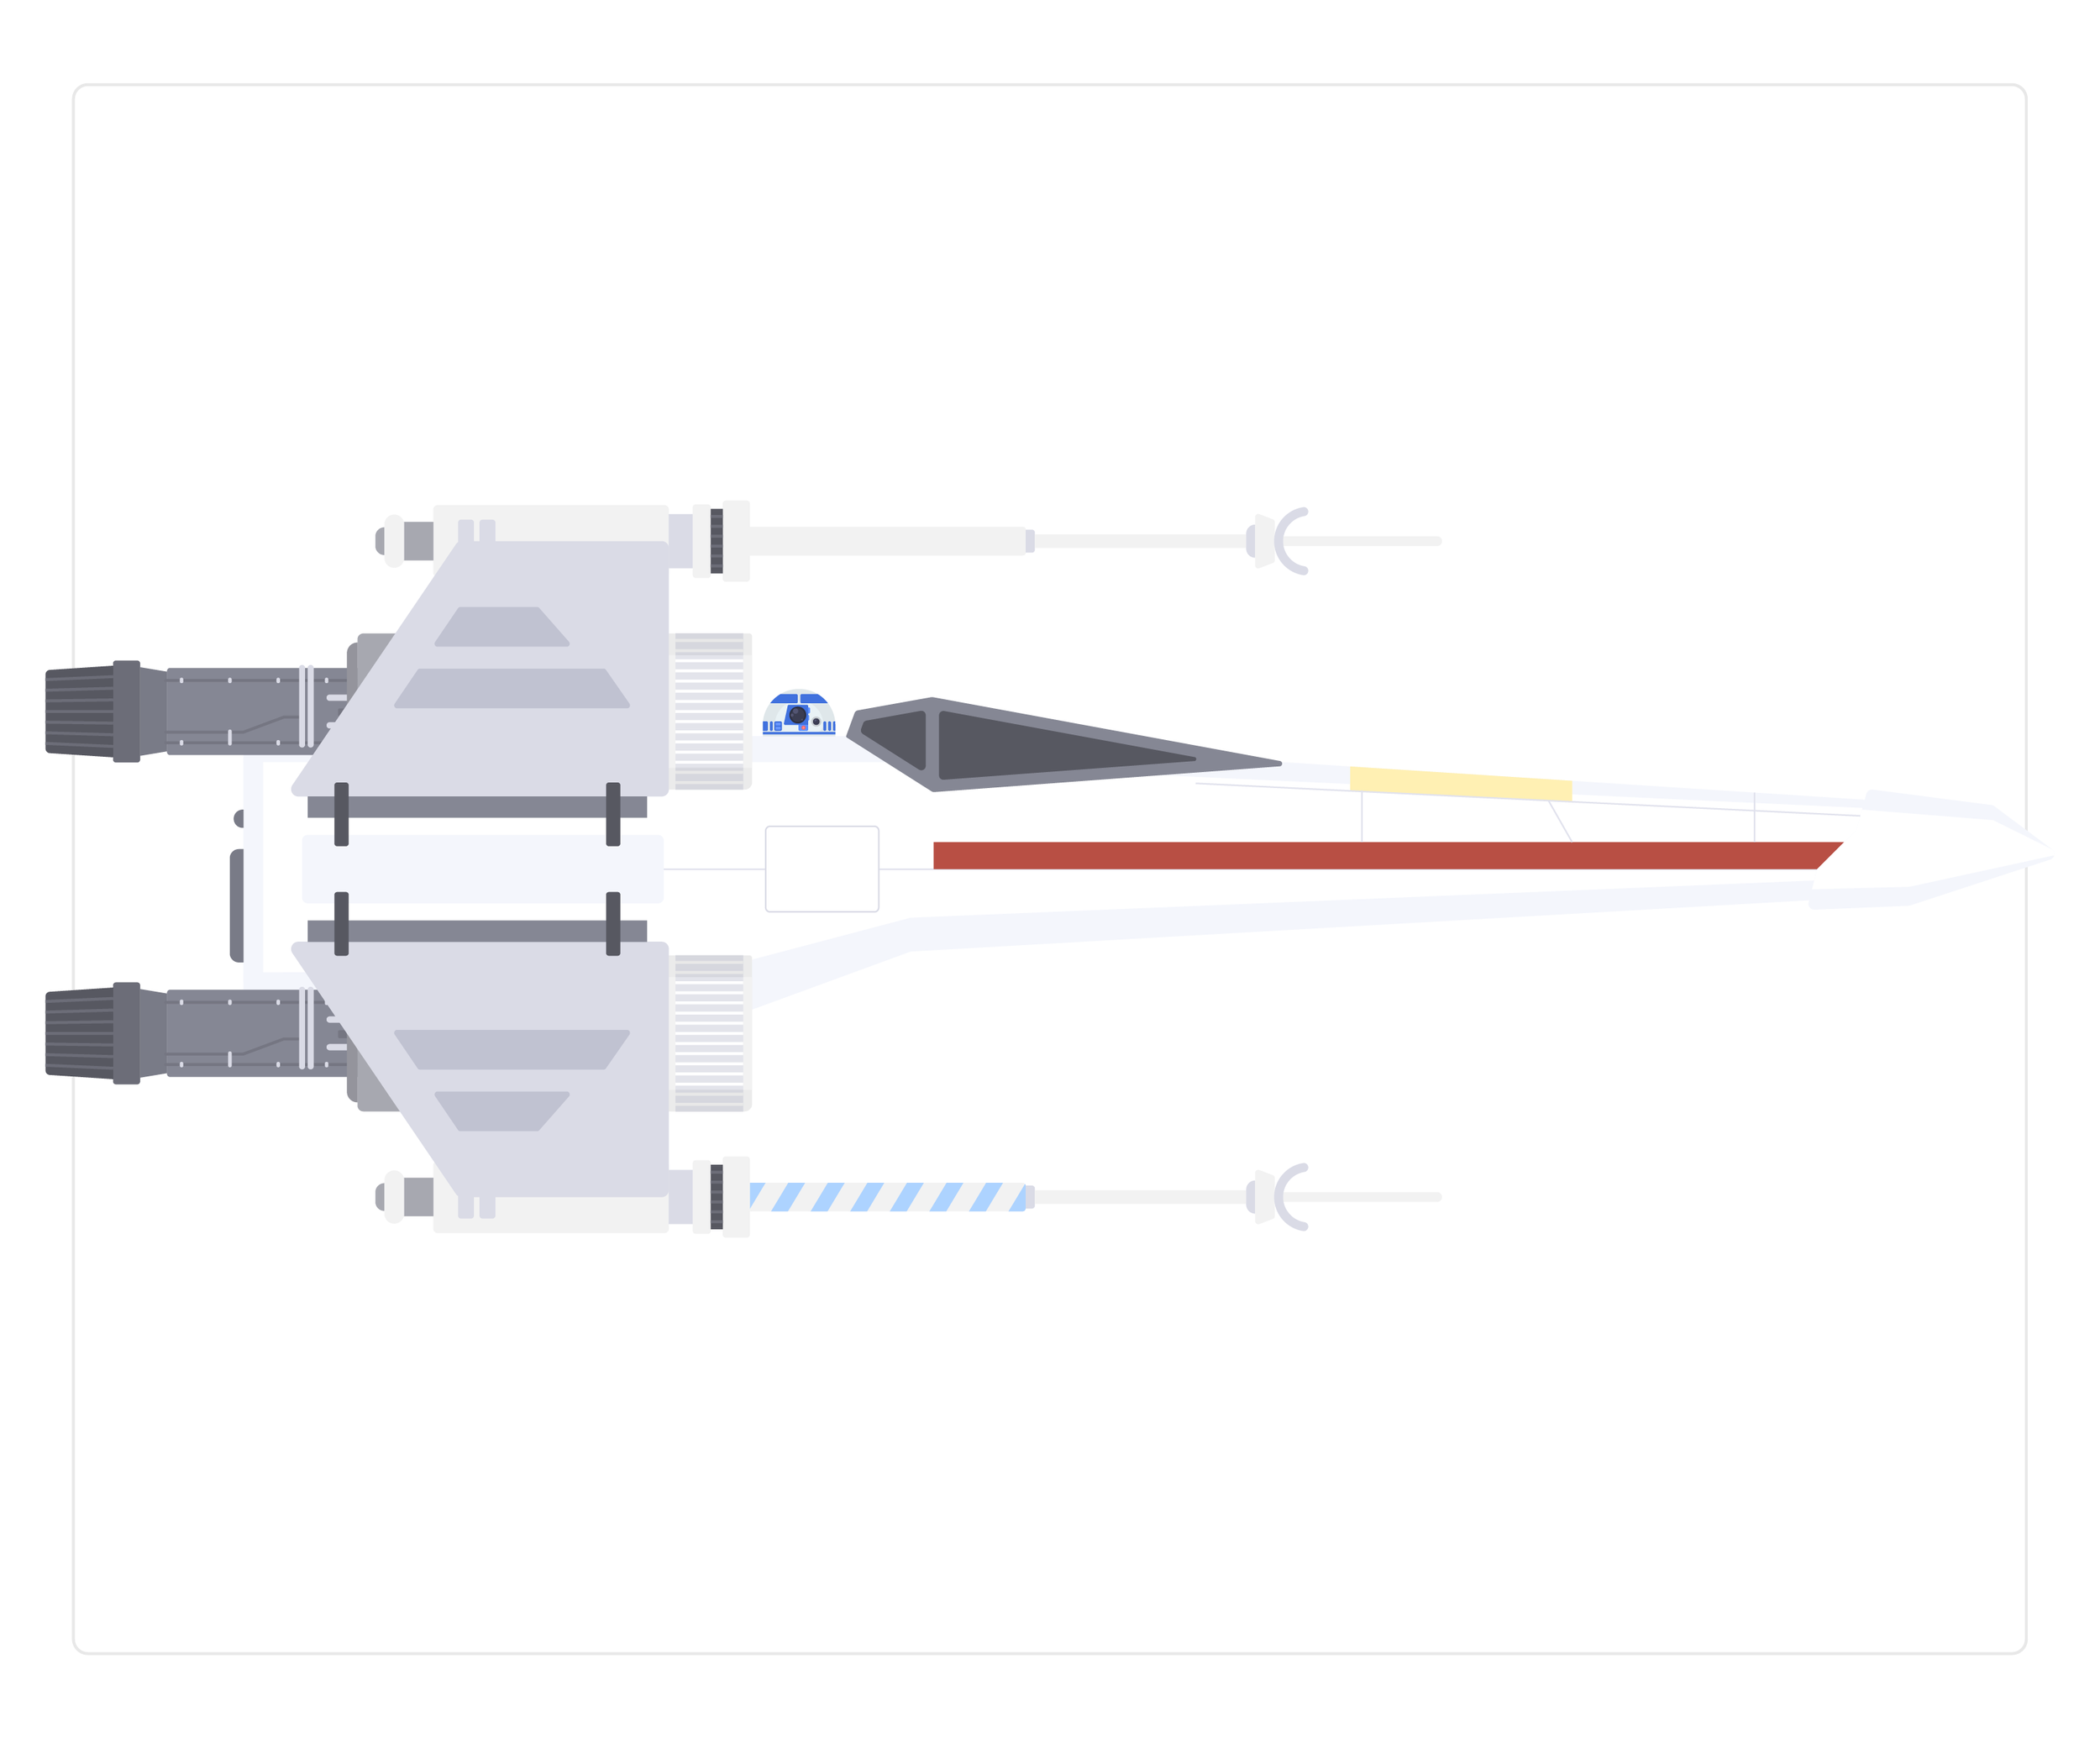 xWing-15.png